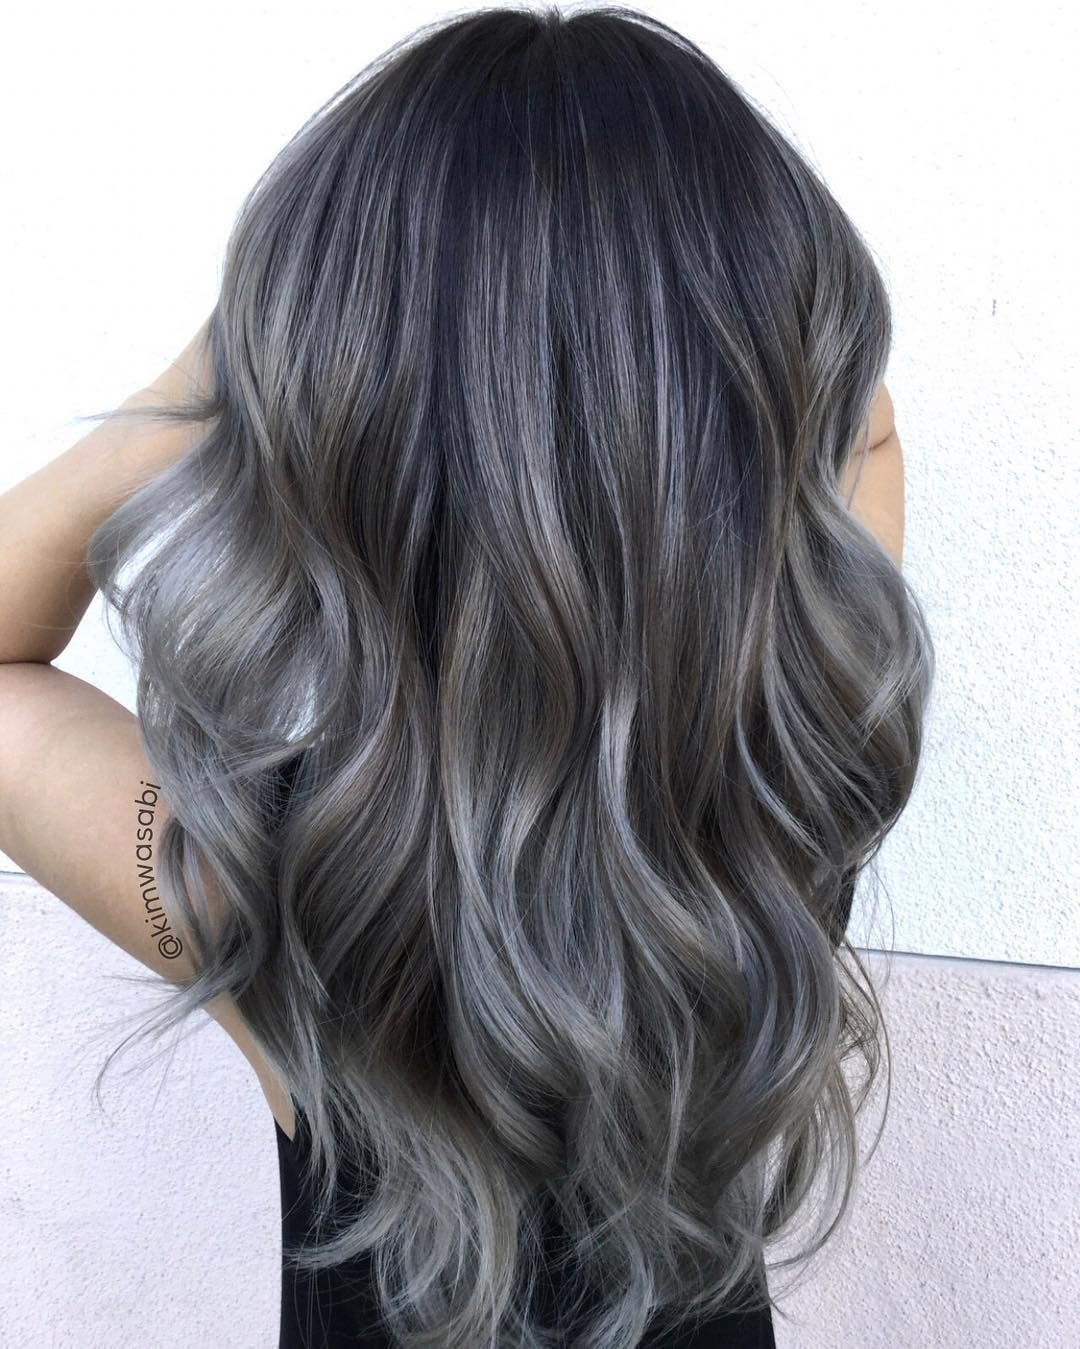 Charcoal Hair The New Low Key Trend On Instagram Grey Hair Dye Balayage Hair Grey Charcoal Hair